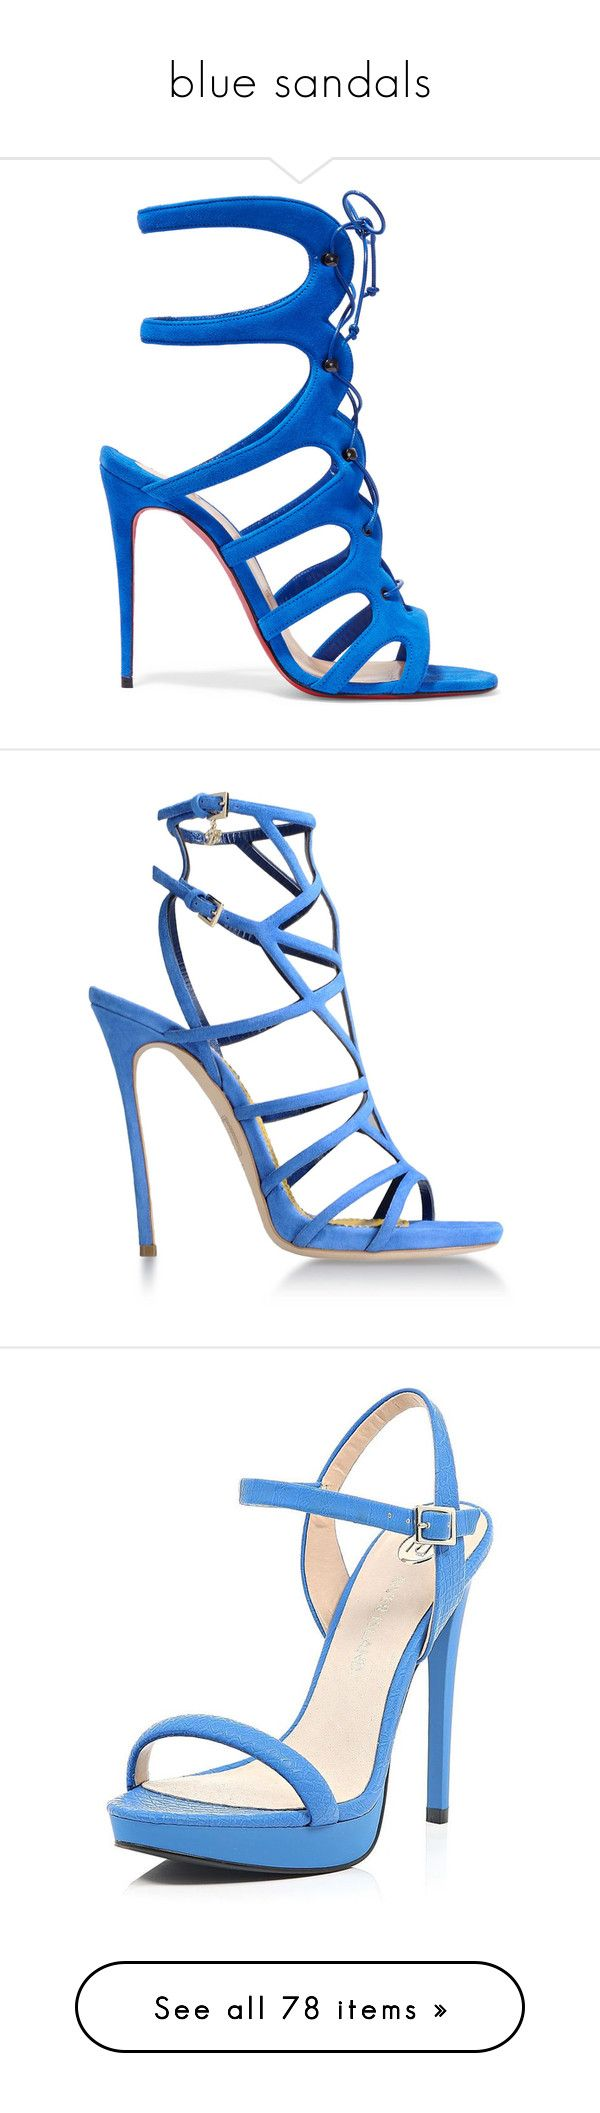 """blue sandals"" by lulucosby ❤ liked on Polyvore featuring shoes, sandals, heels, christian louboutin, blue, lace-up sandals, strappy high heel sandals, high heel sandals, heeled sandals and lace up high heel sandals"